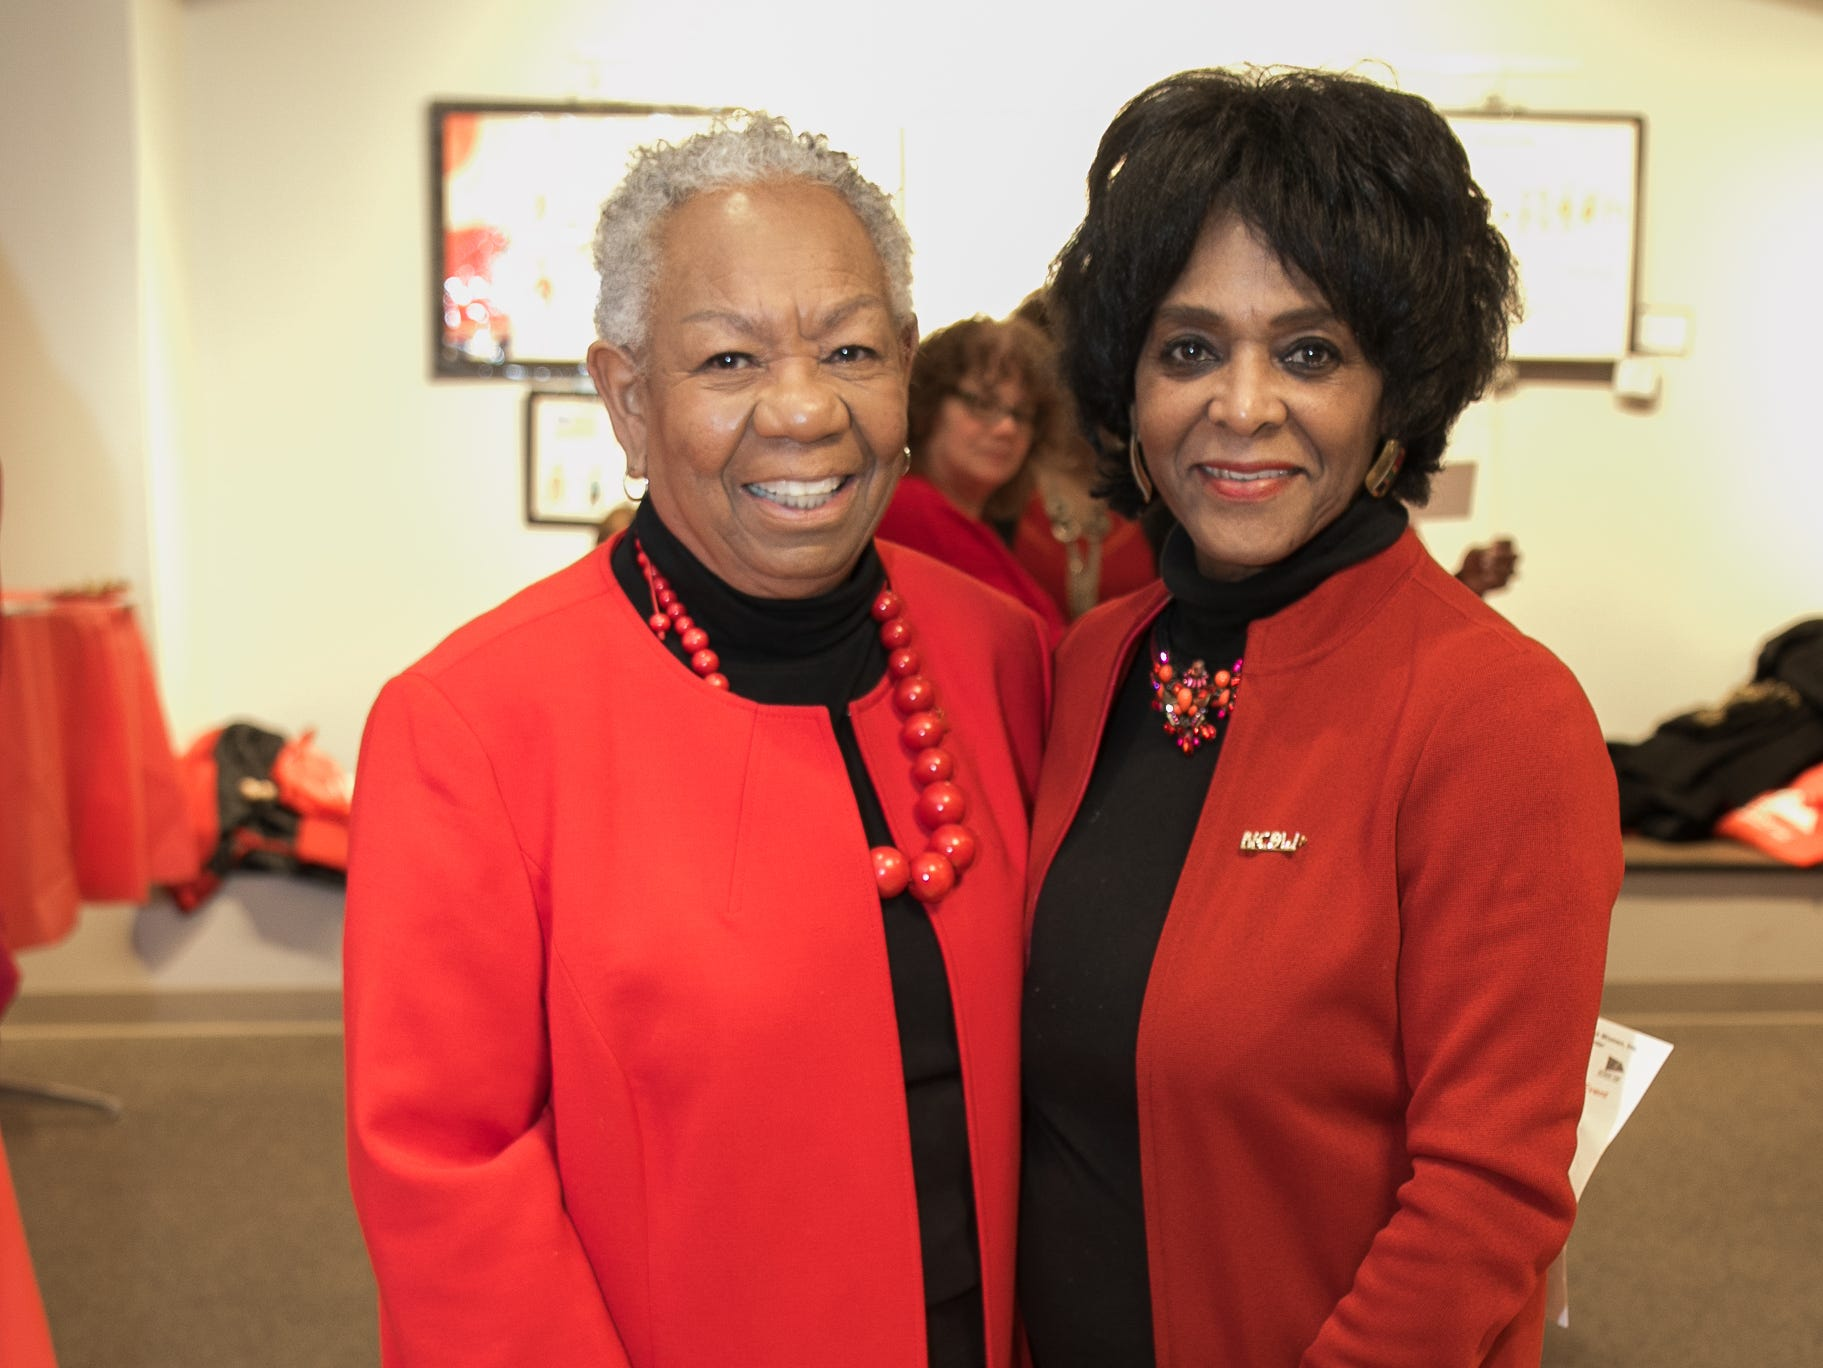 Rev. Dr. Edna Dismus, Jeanette Curtis-Rideau- Charter Member. The National Coalition of Black Women of Bergen and Passaic Counties held its annual Heart Healthy Go Red Event at The Hackensack Performing Arts Theater. 02/01/2019